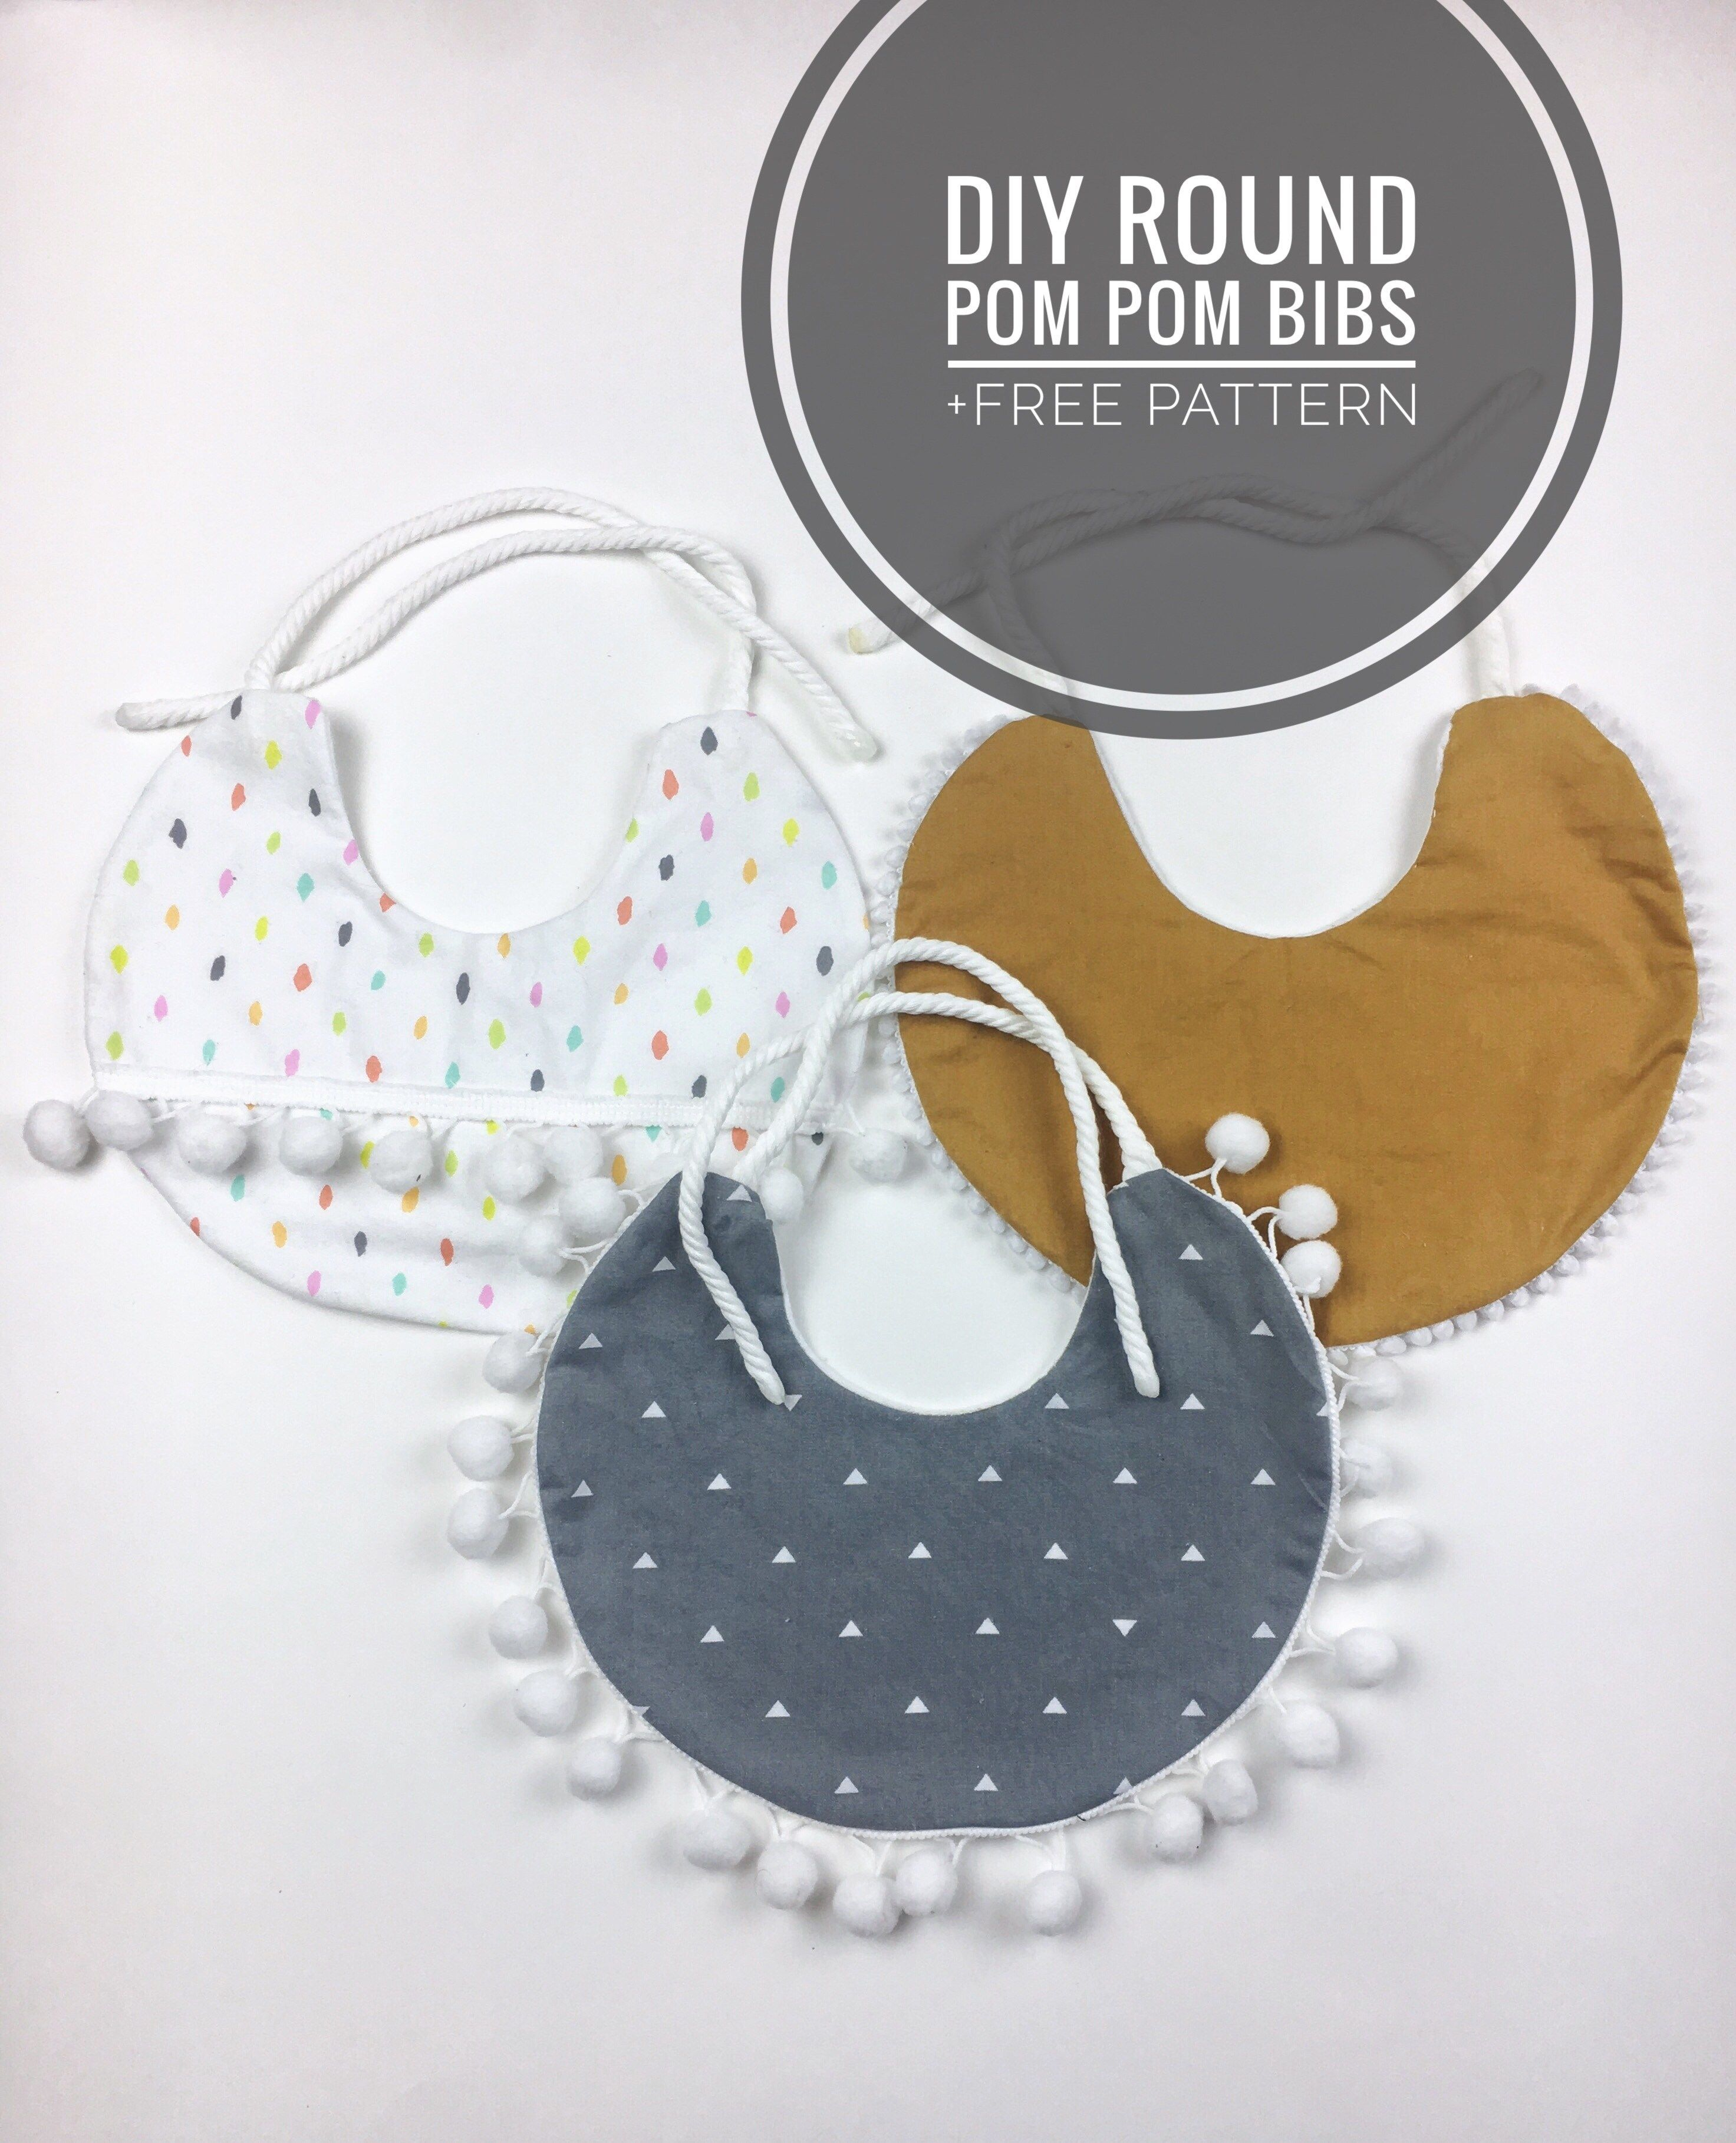 Make your own pom pom bib under $5!!! Etsy sales for $20 ...